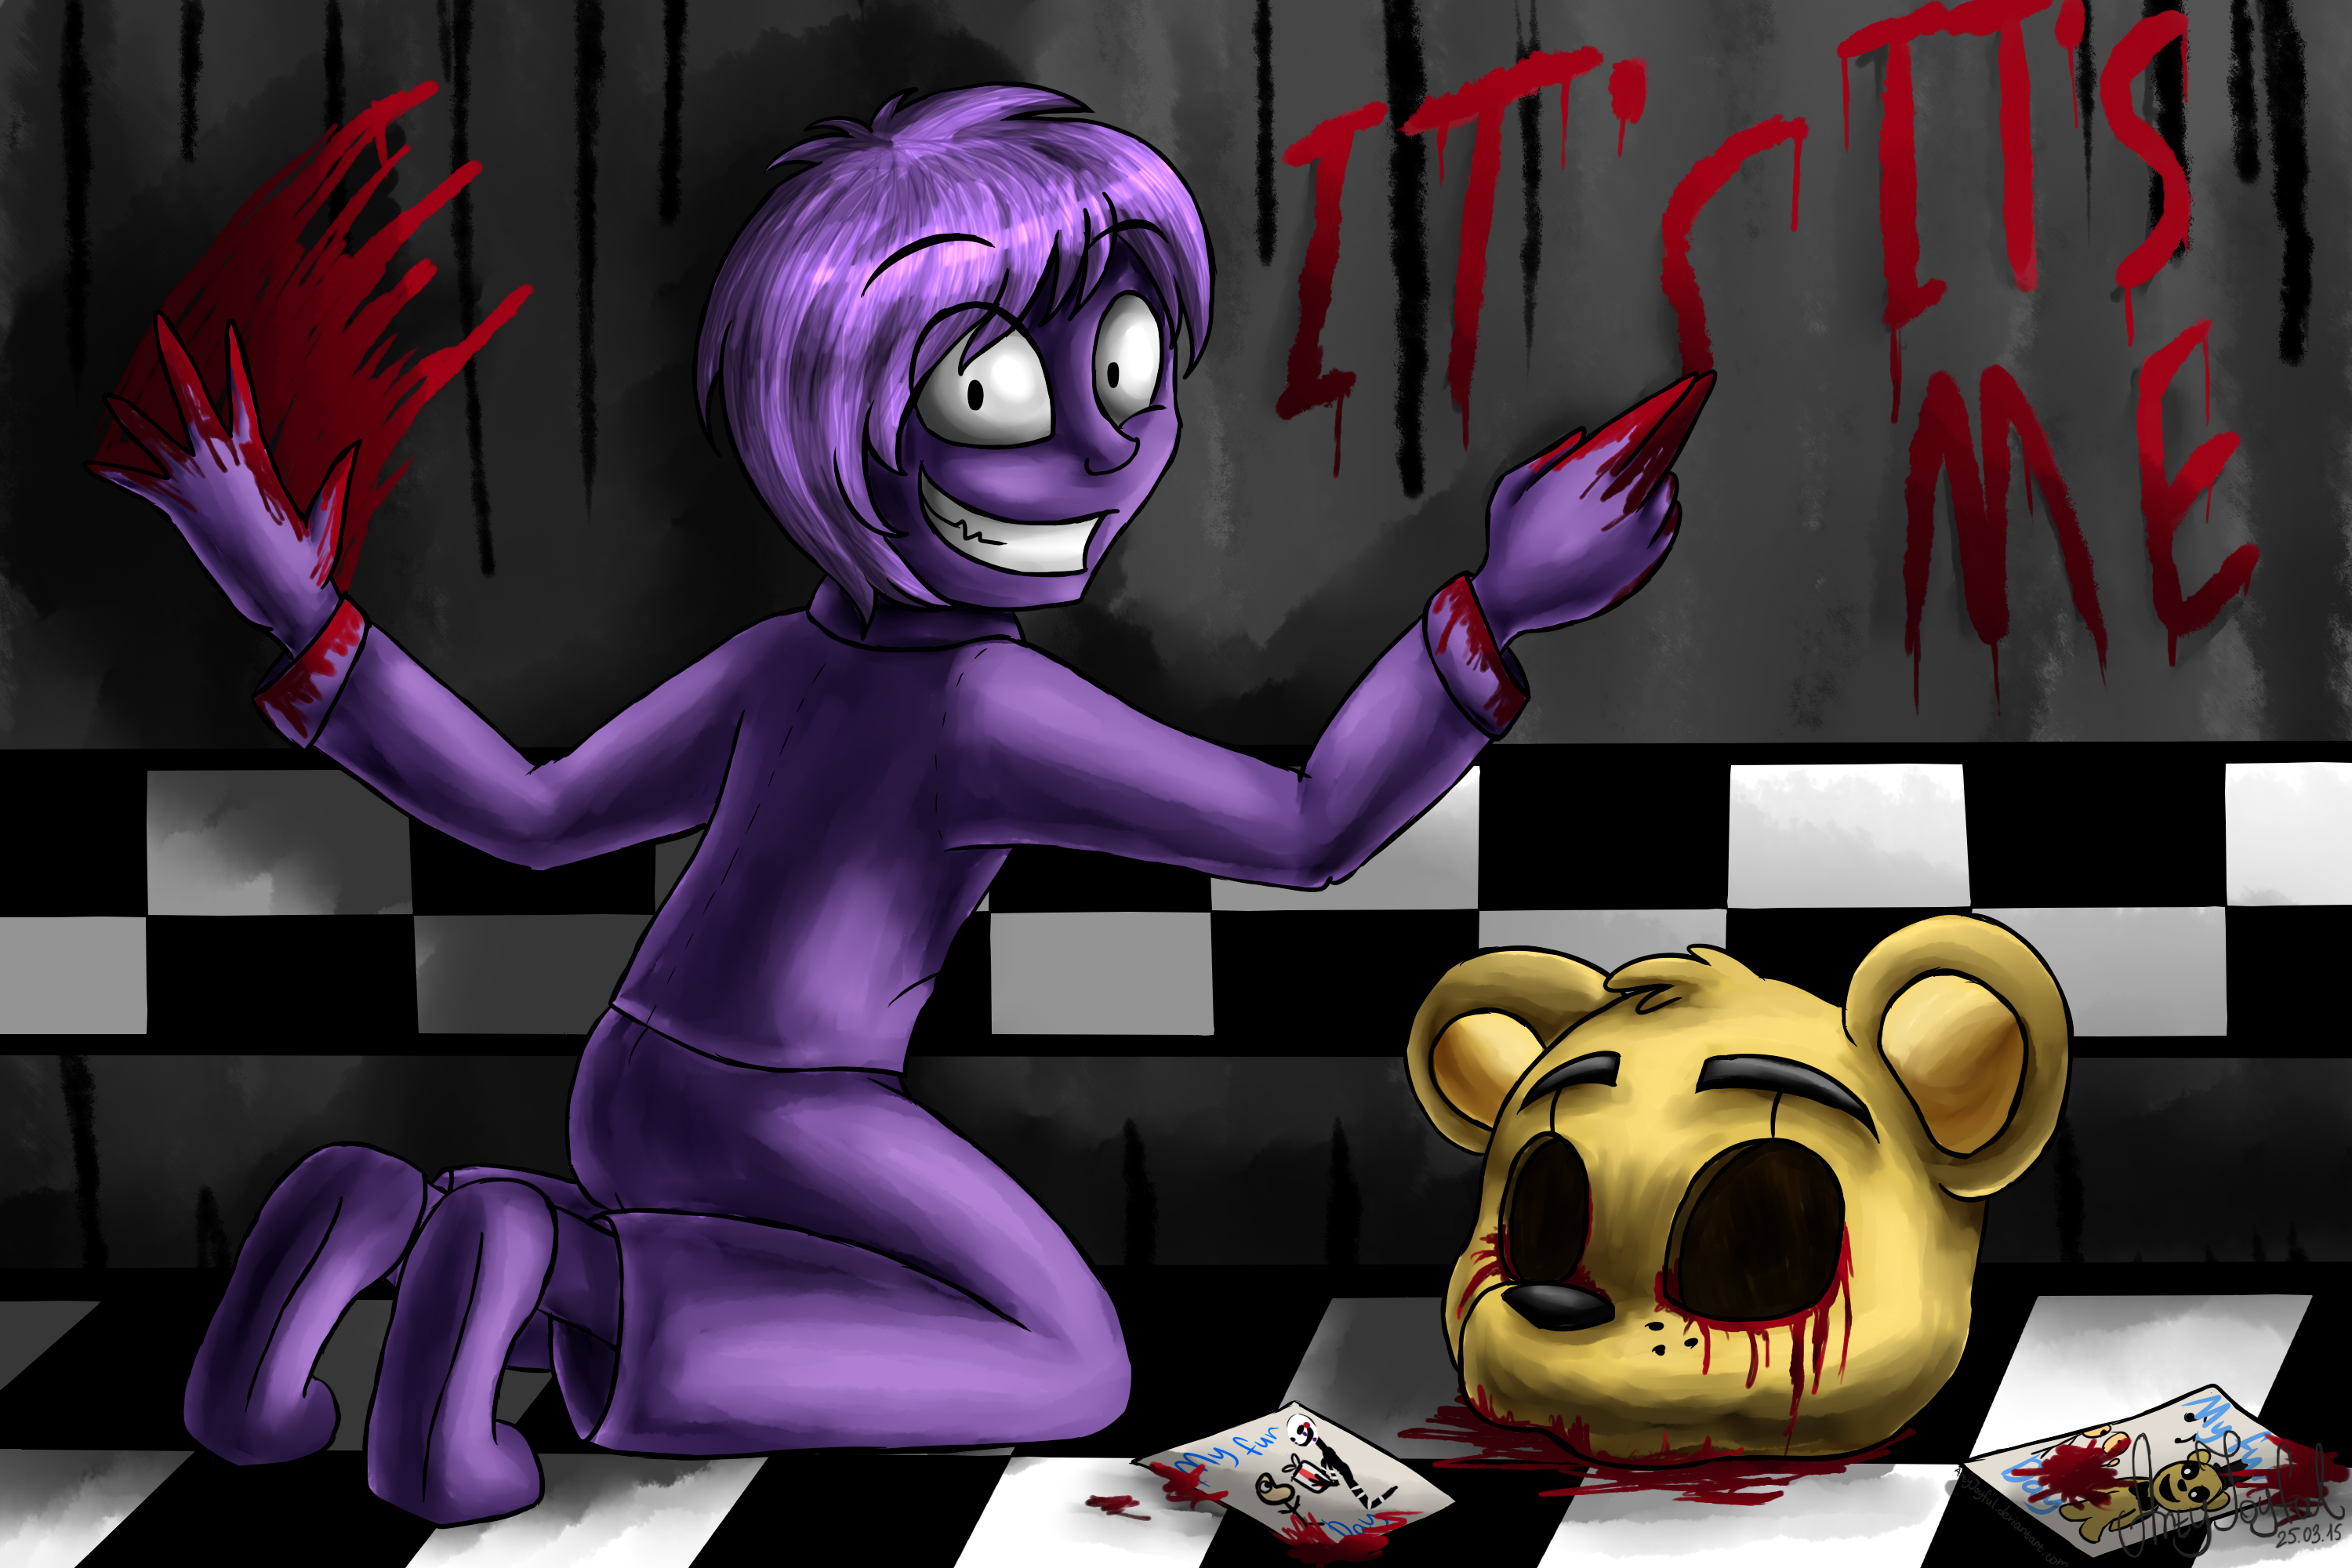 Purple Guy Five Nights At Freddys By Artyjoyful On -5547